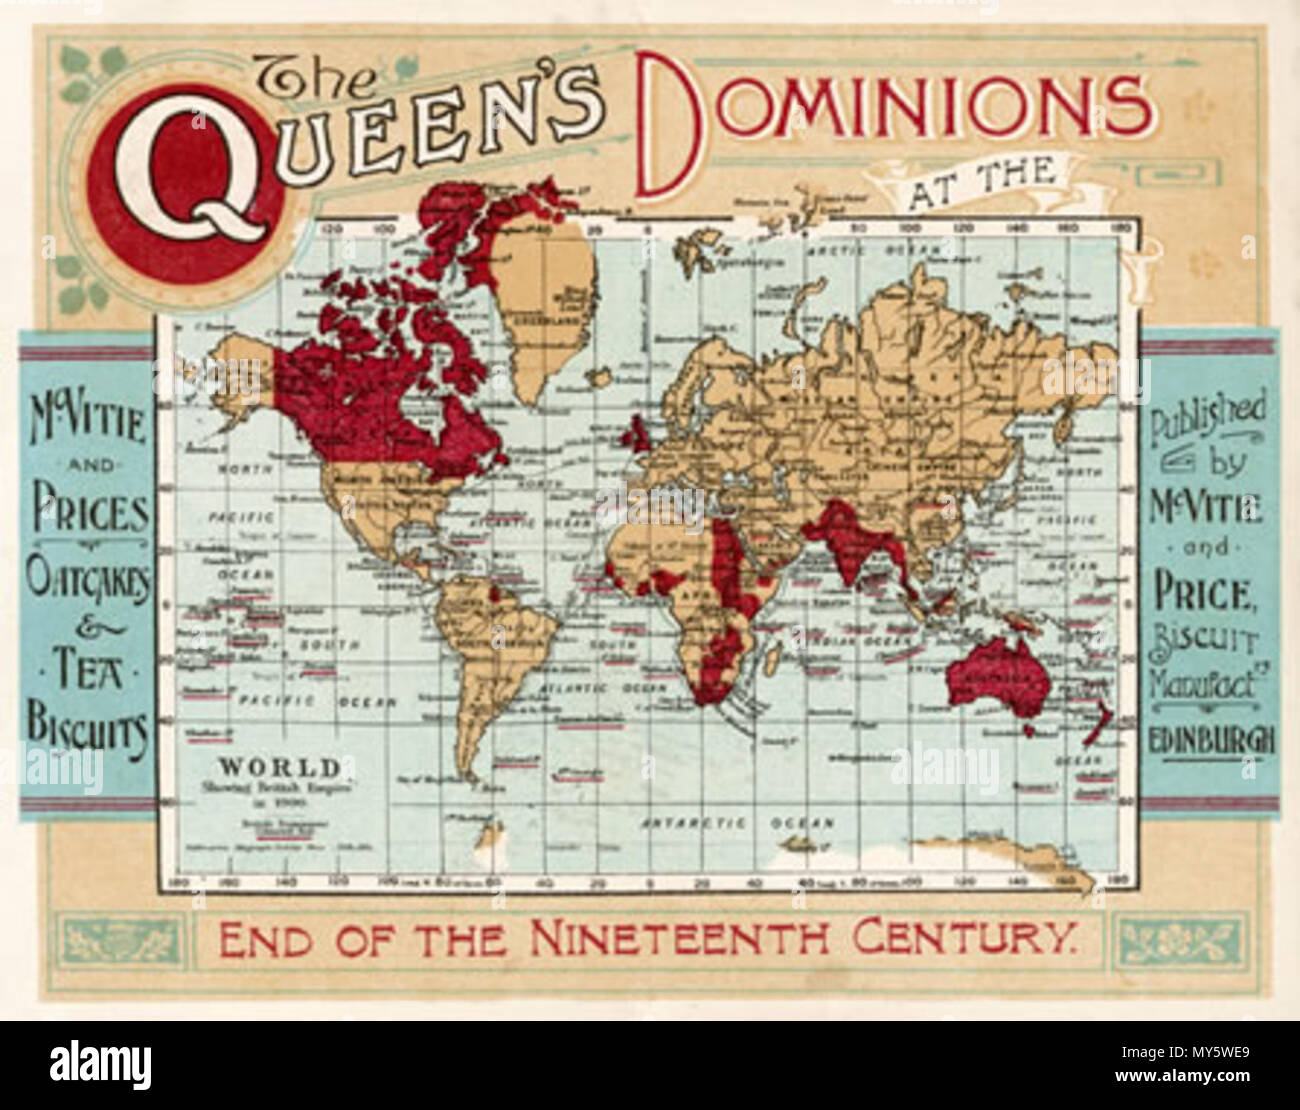 . World map of the Queen's Dominions at the end of the nineteenth century . 1898. McVitie and Price 525 The-queens-dominions - Stock Image